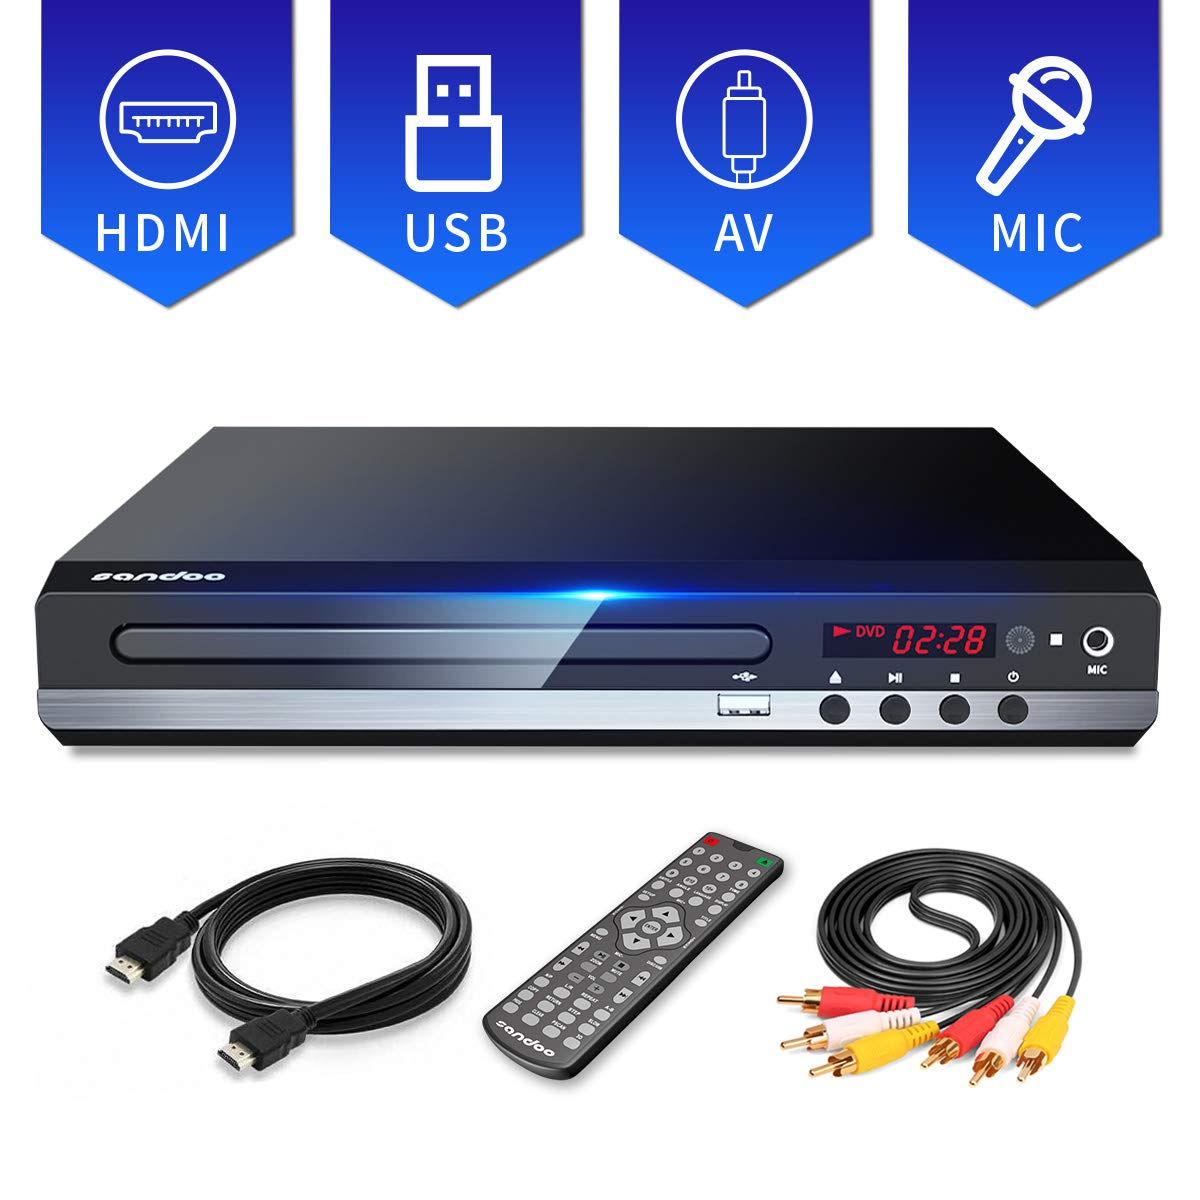 Sandoo DVD Player, All Region DVD CD/Disc Player For TV With HDMI/AV output, HDMI/AV cables included, HD 1080P, Supports USB/MIC, Built-in PAL/NTSC System, Coaxial Port and Remote Control